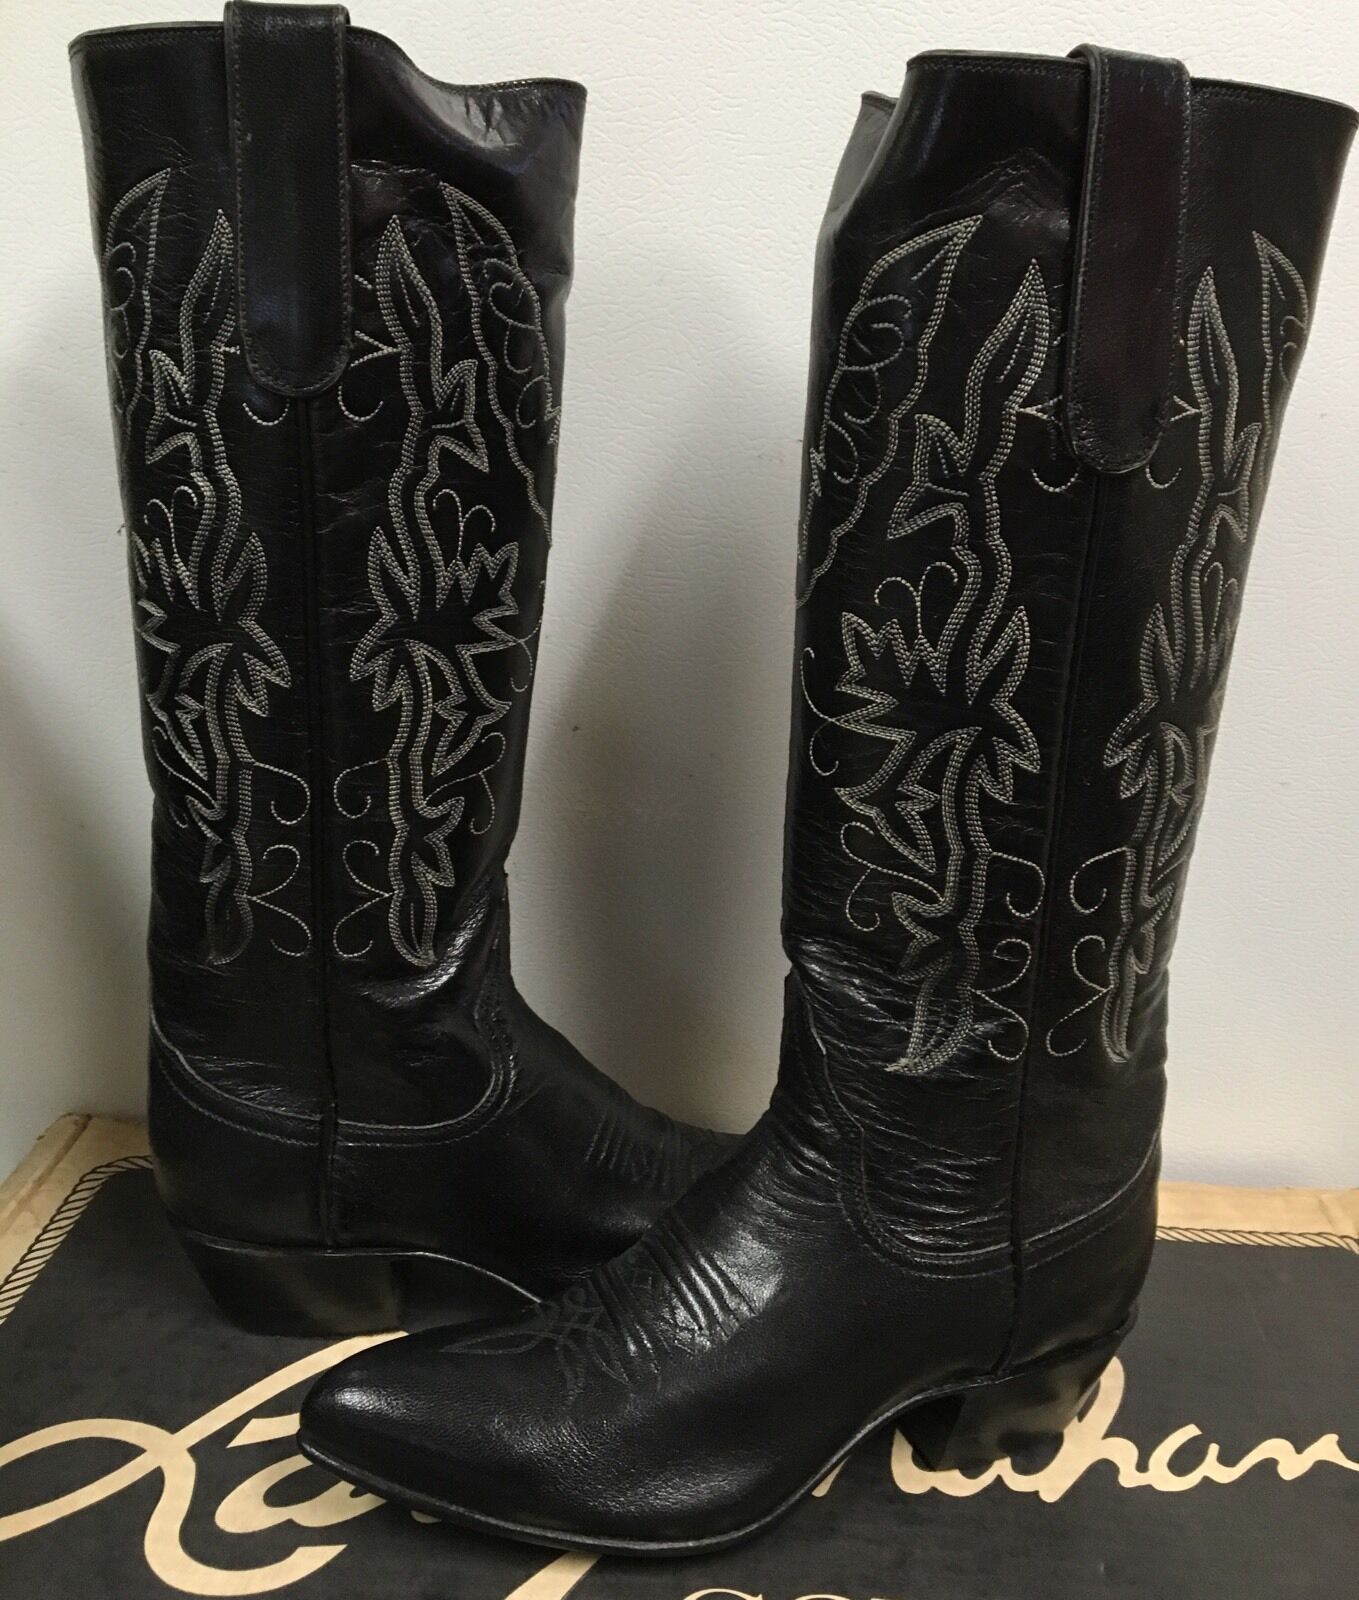 Larry Mahan Mahan Mahan Women's Western Riding Boots  Black  Leather with  6152  size US 4 6740cb